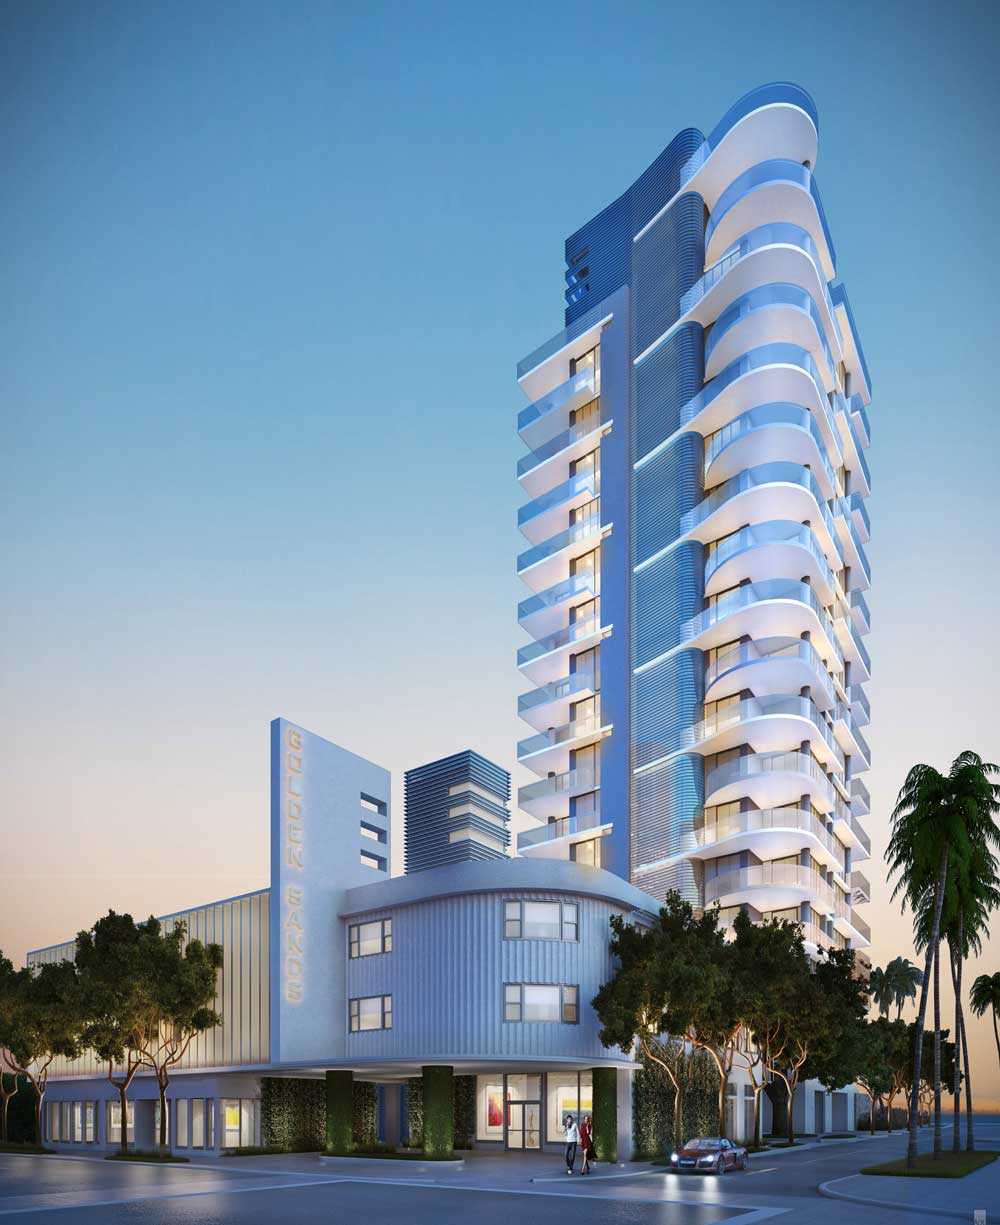 Houses For Sale Miami Beach: L'Atelier Condos For Sale